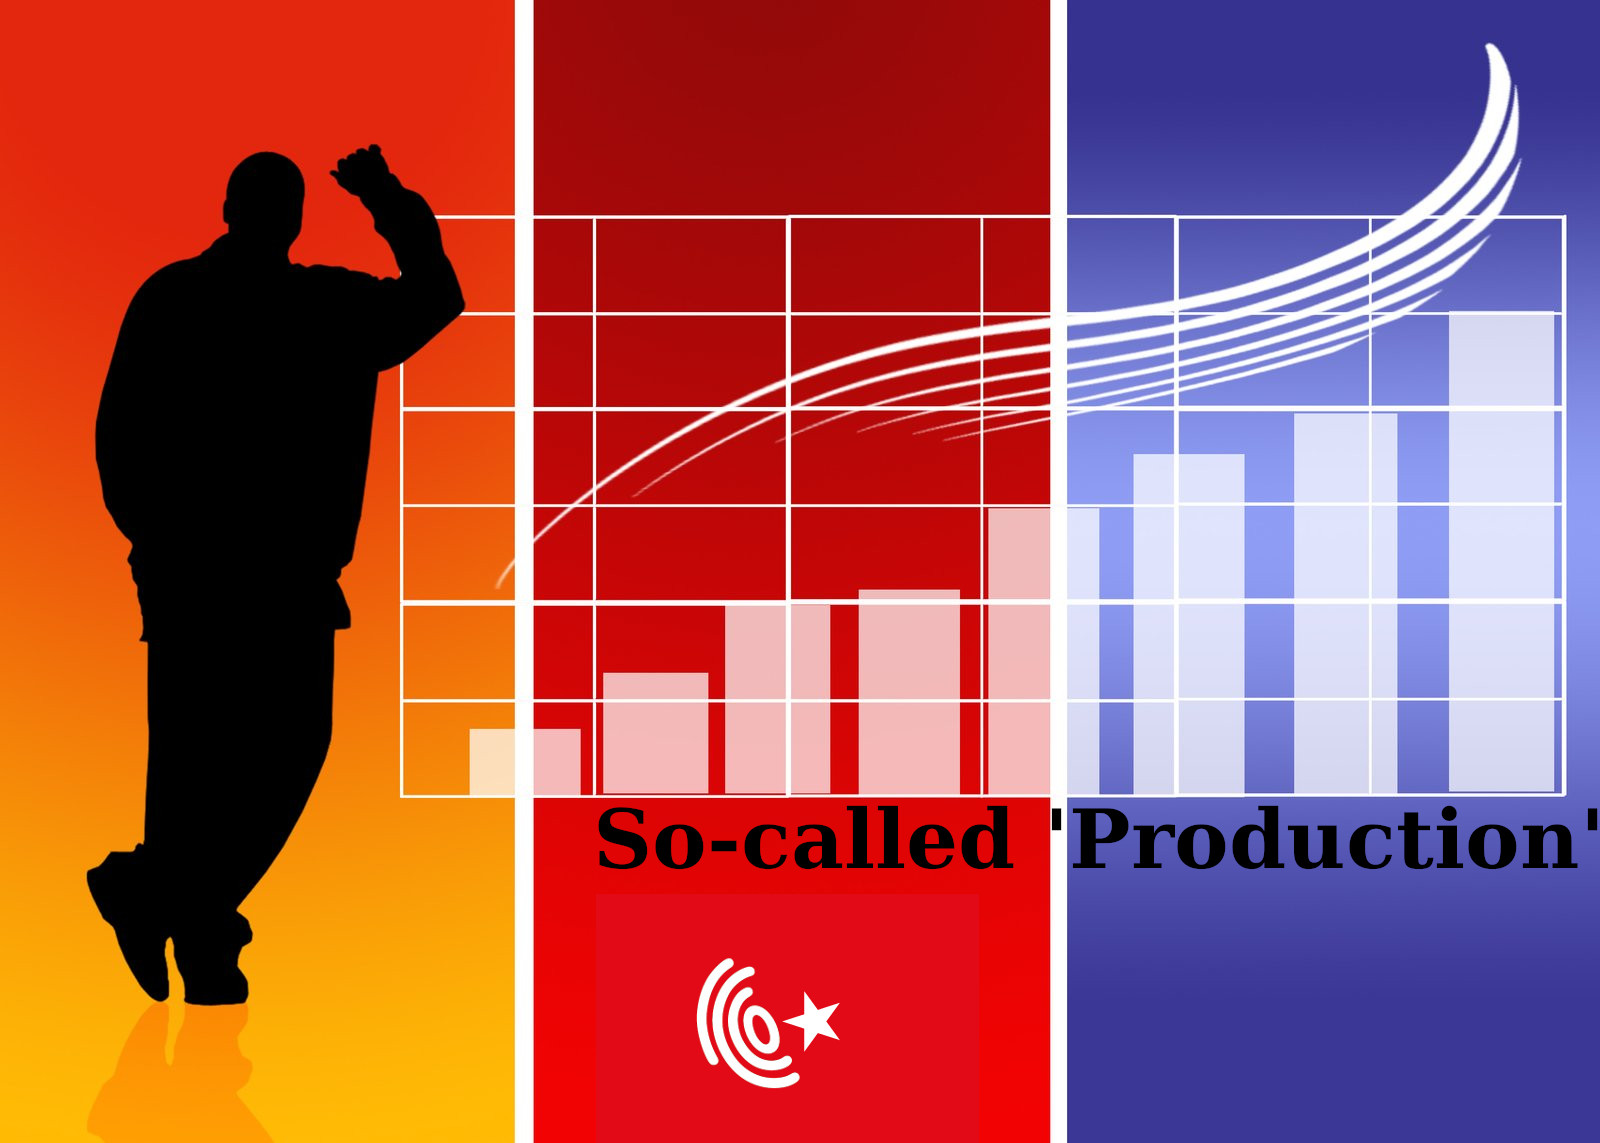 So-called 'Production'